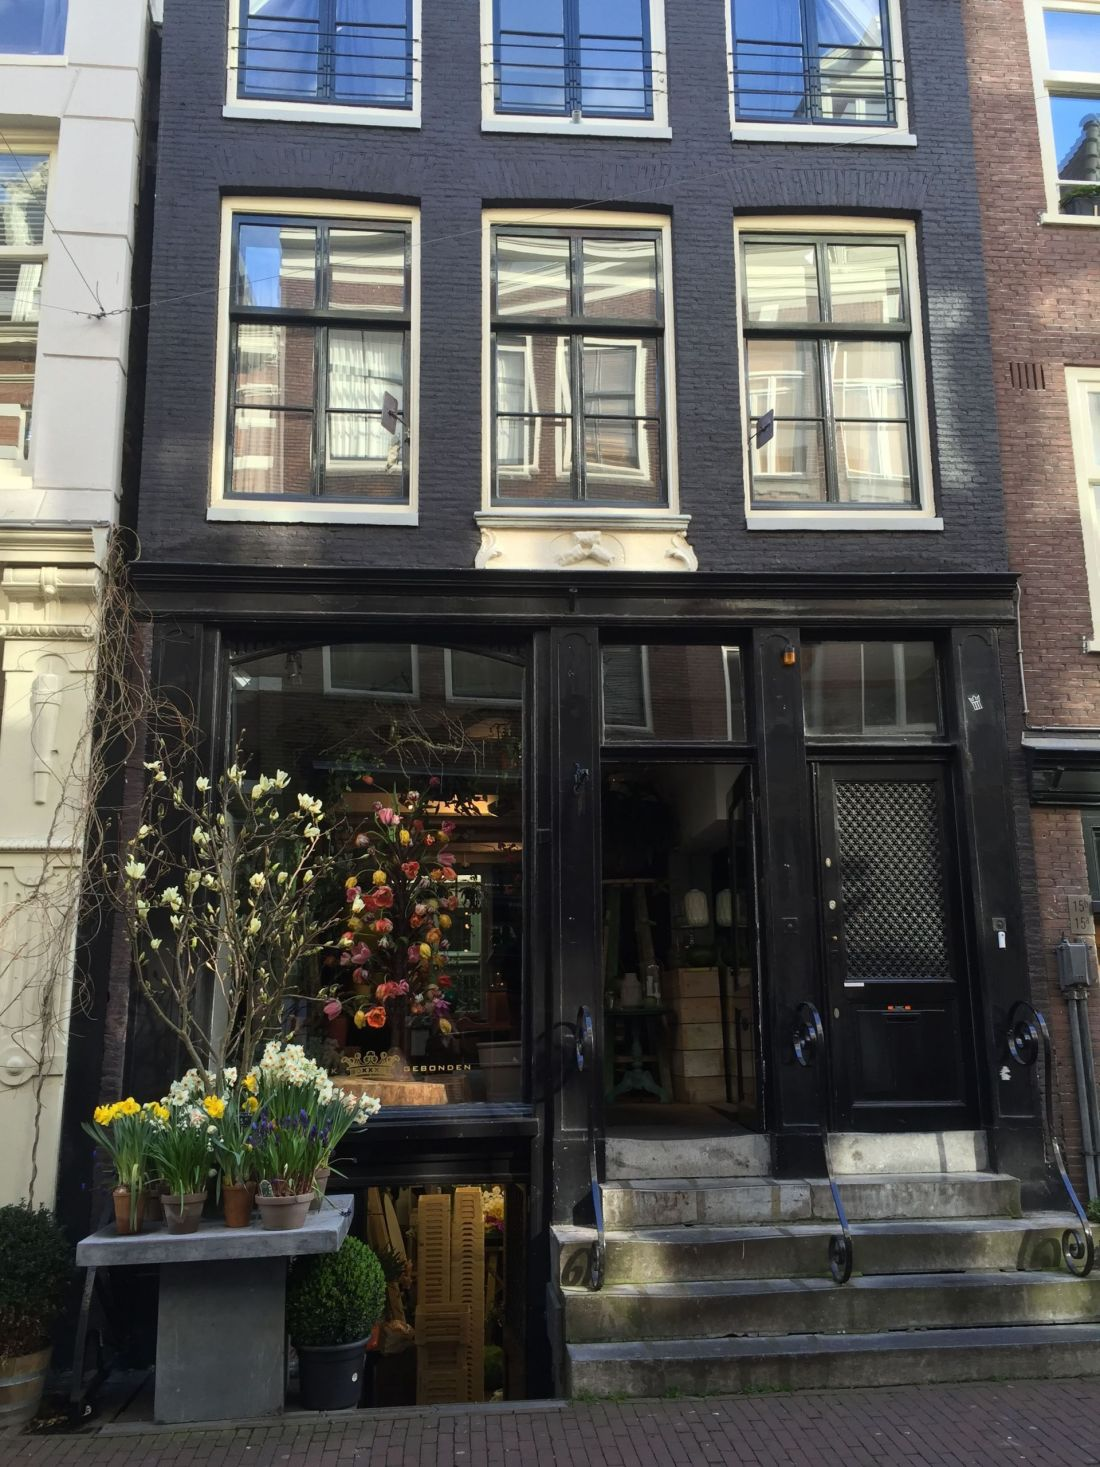 Shops in the Jordaan, Amsterdam